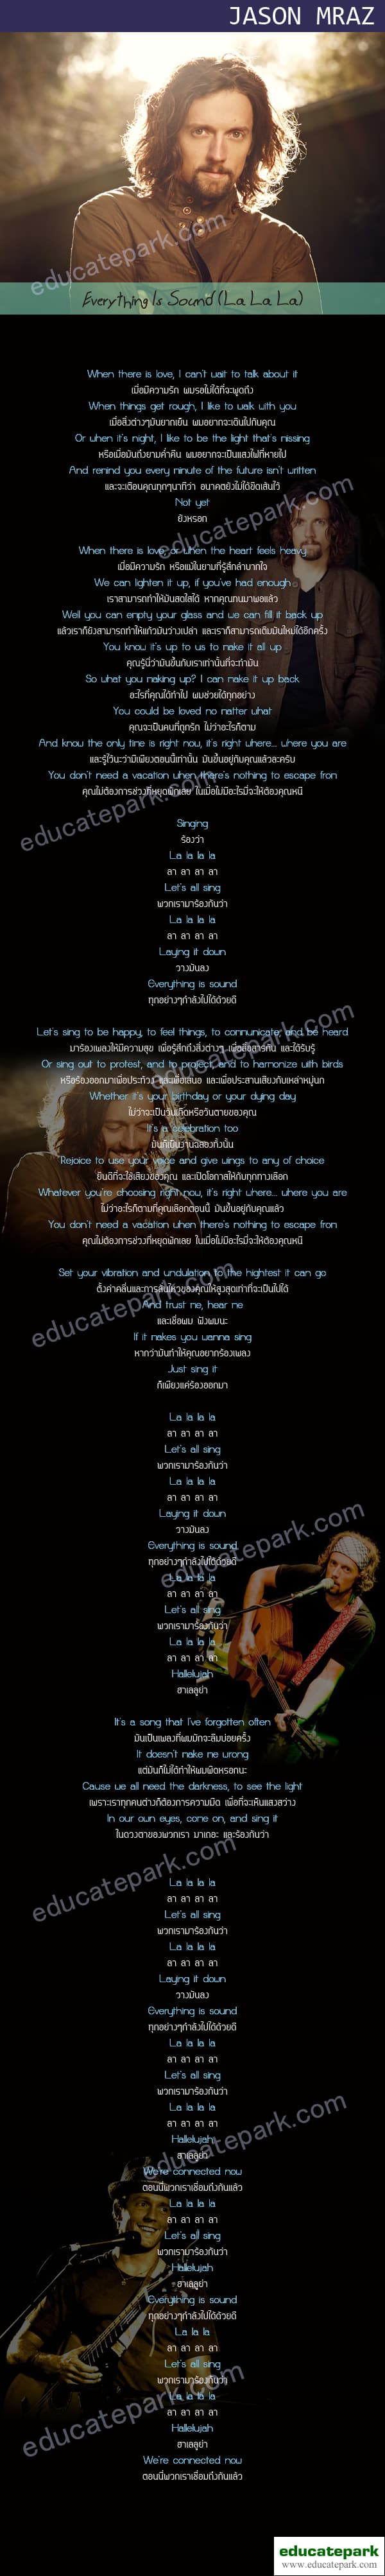 แปลเพลง Everything Is Sound (La La La) - Jason Mraz